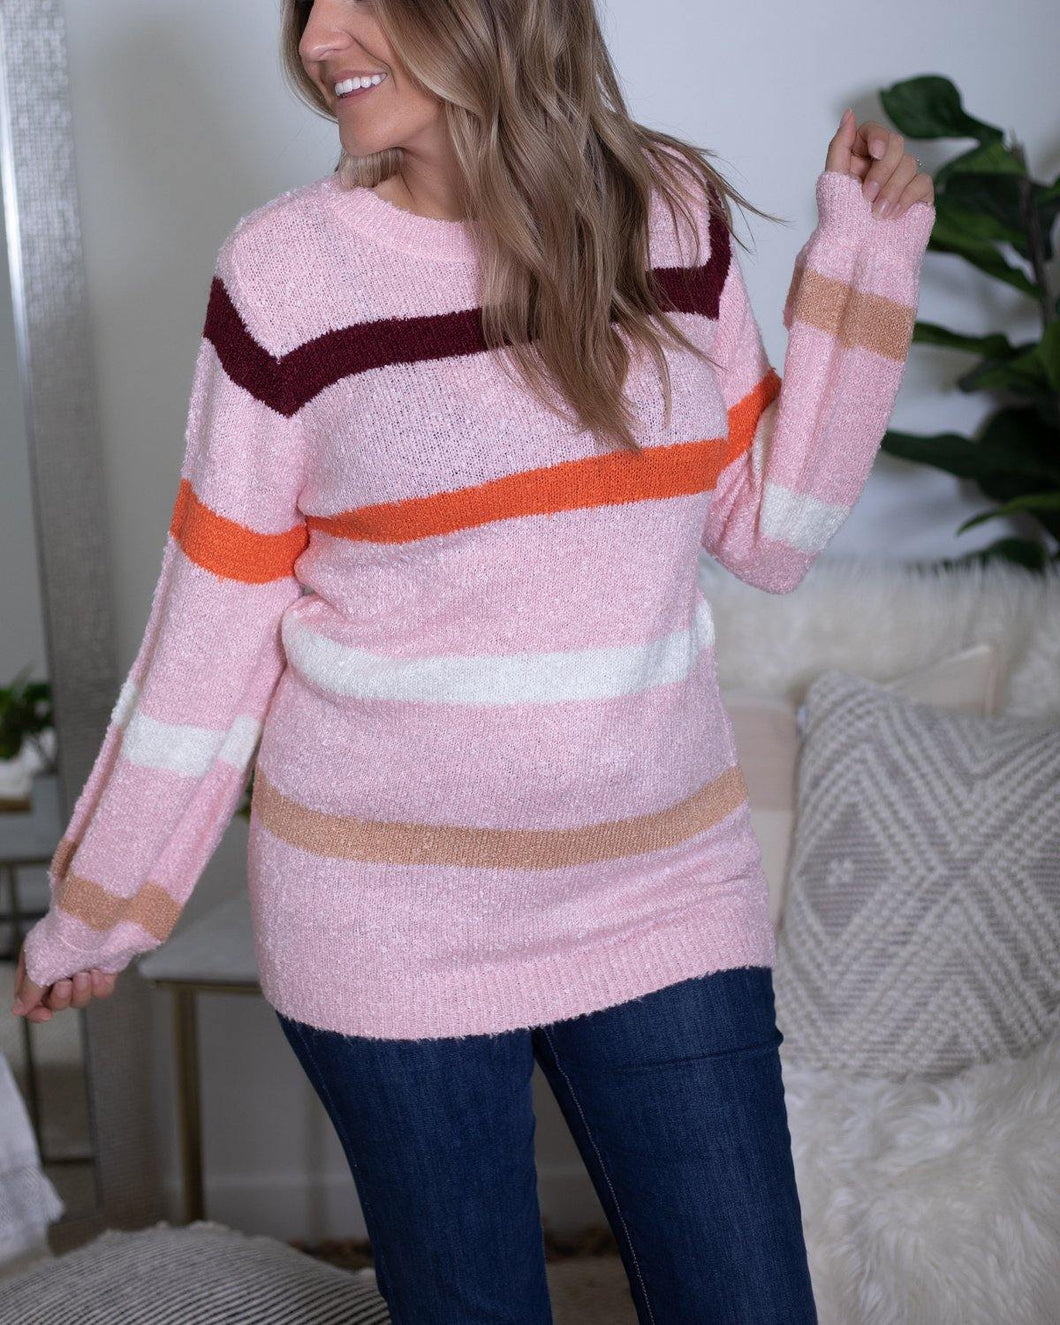 Multi Striped Crewneck Sweater - The Local Women's Boutique Clothing